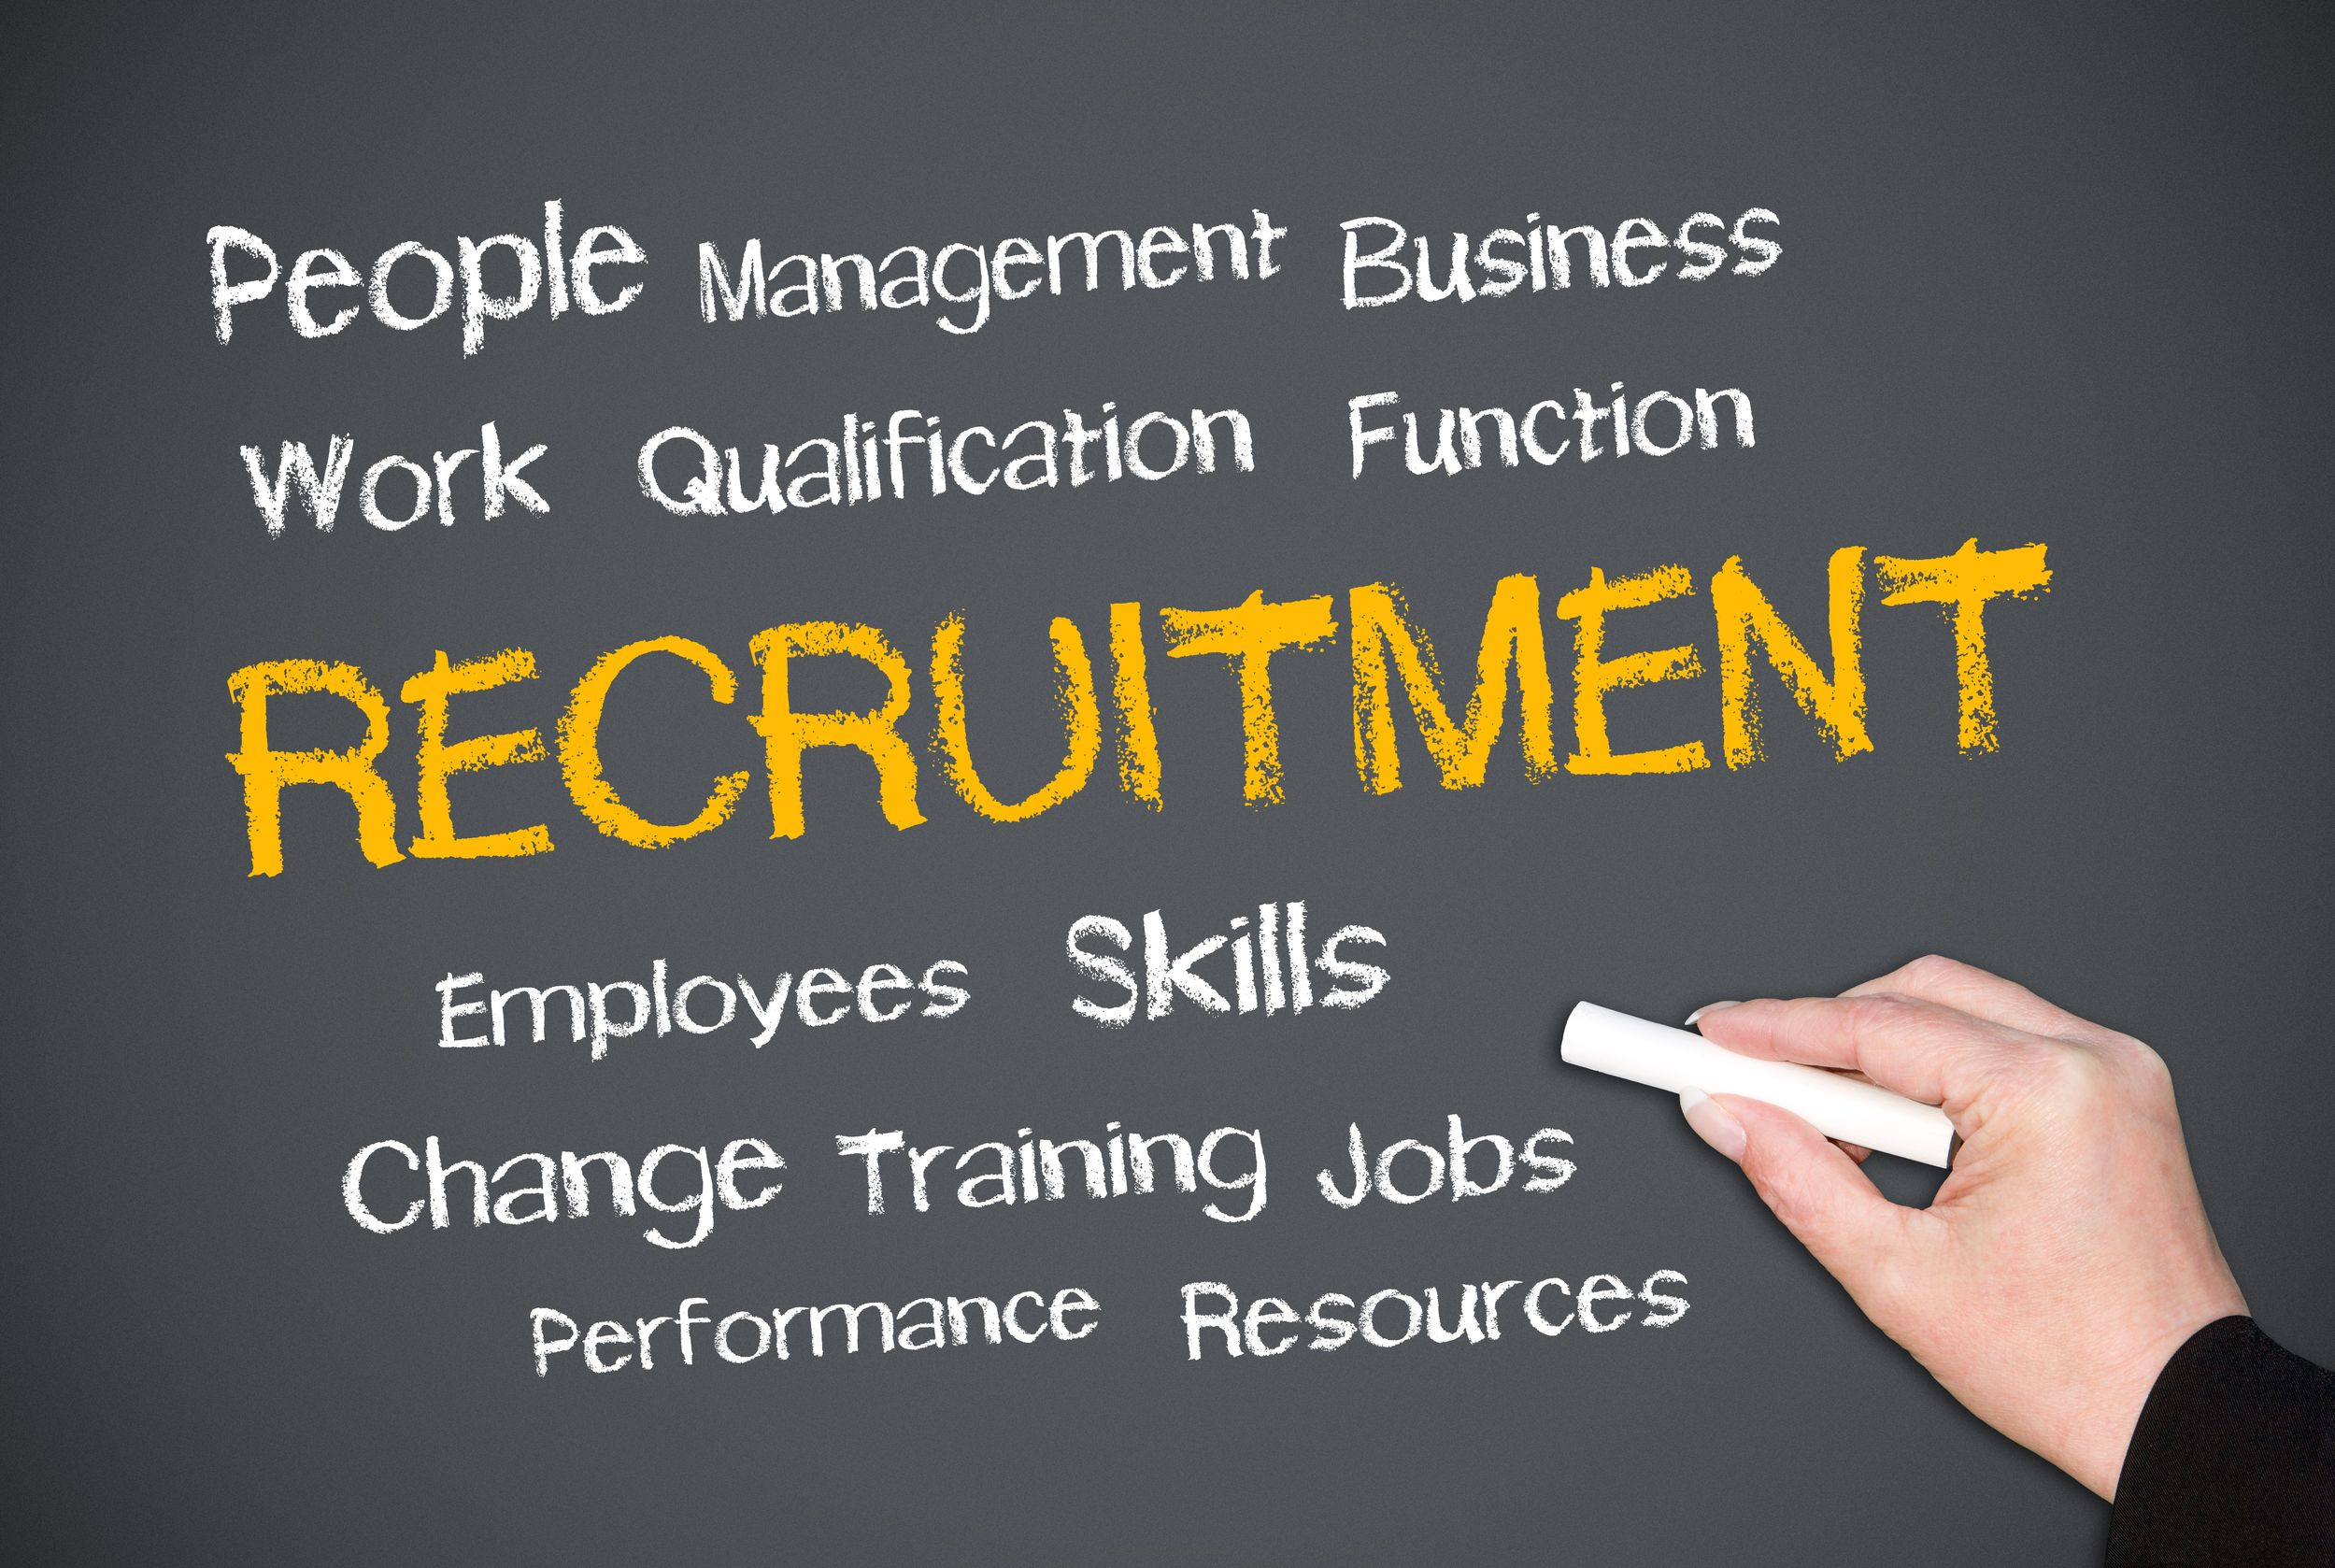 a day in the life of a recruiter 1st choice recruitment